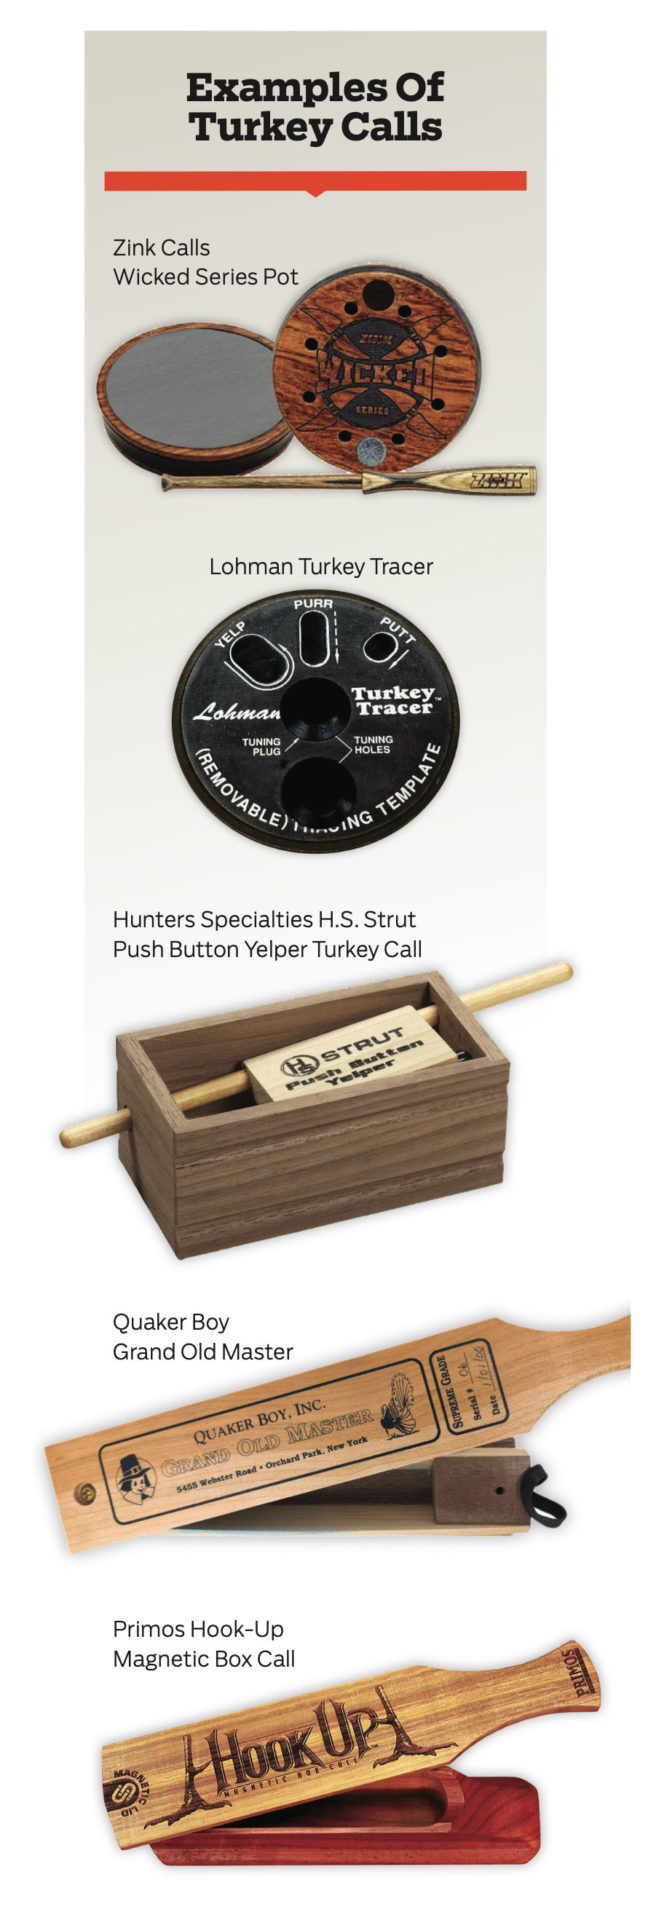 Examples of turkey calls.